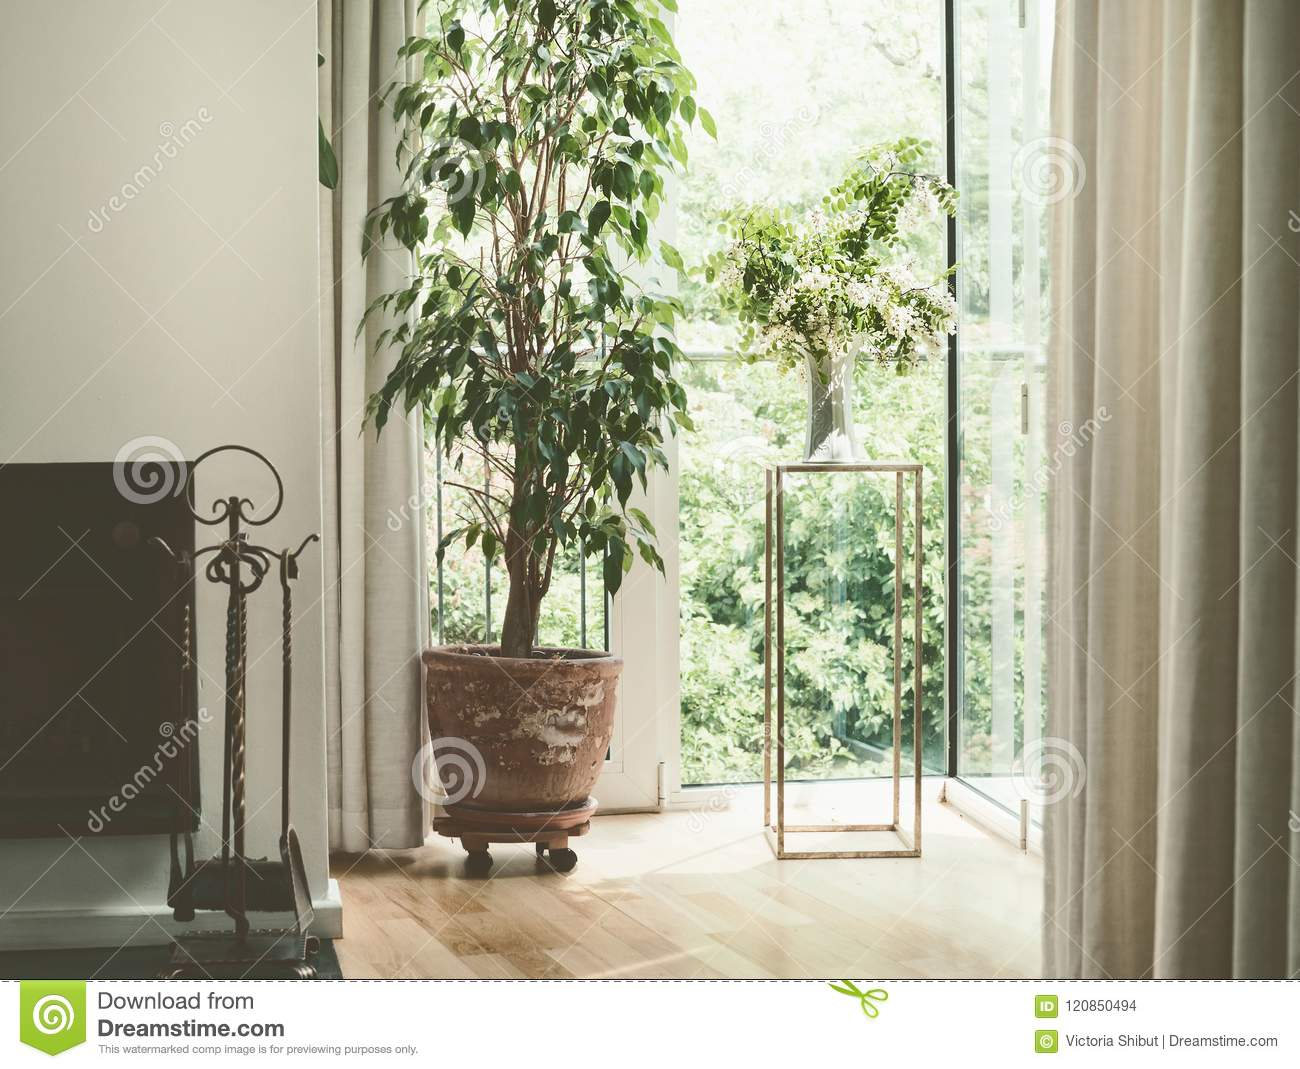 Cozy Home Interior Design With House Plants At Window Living Room